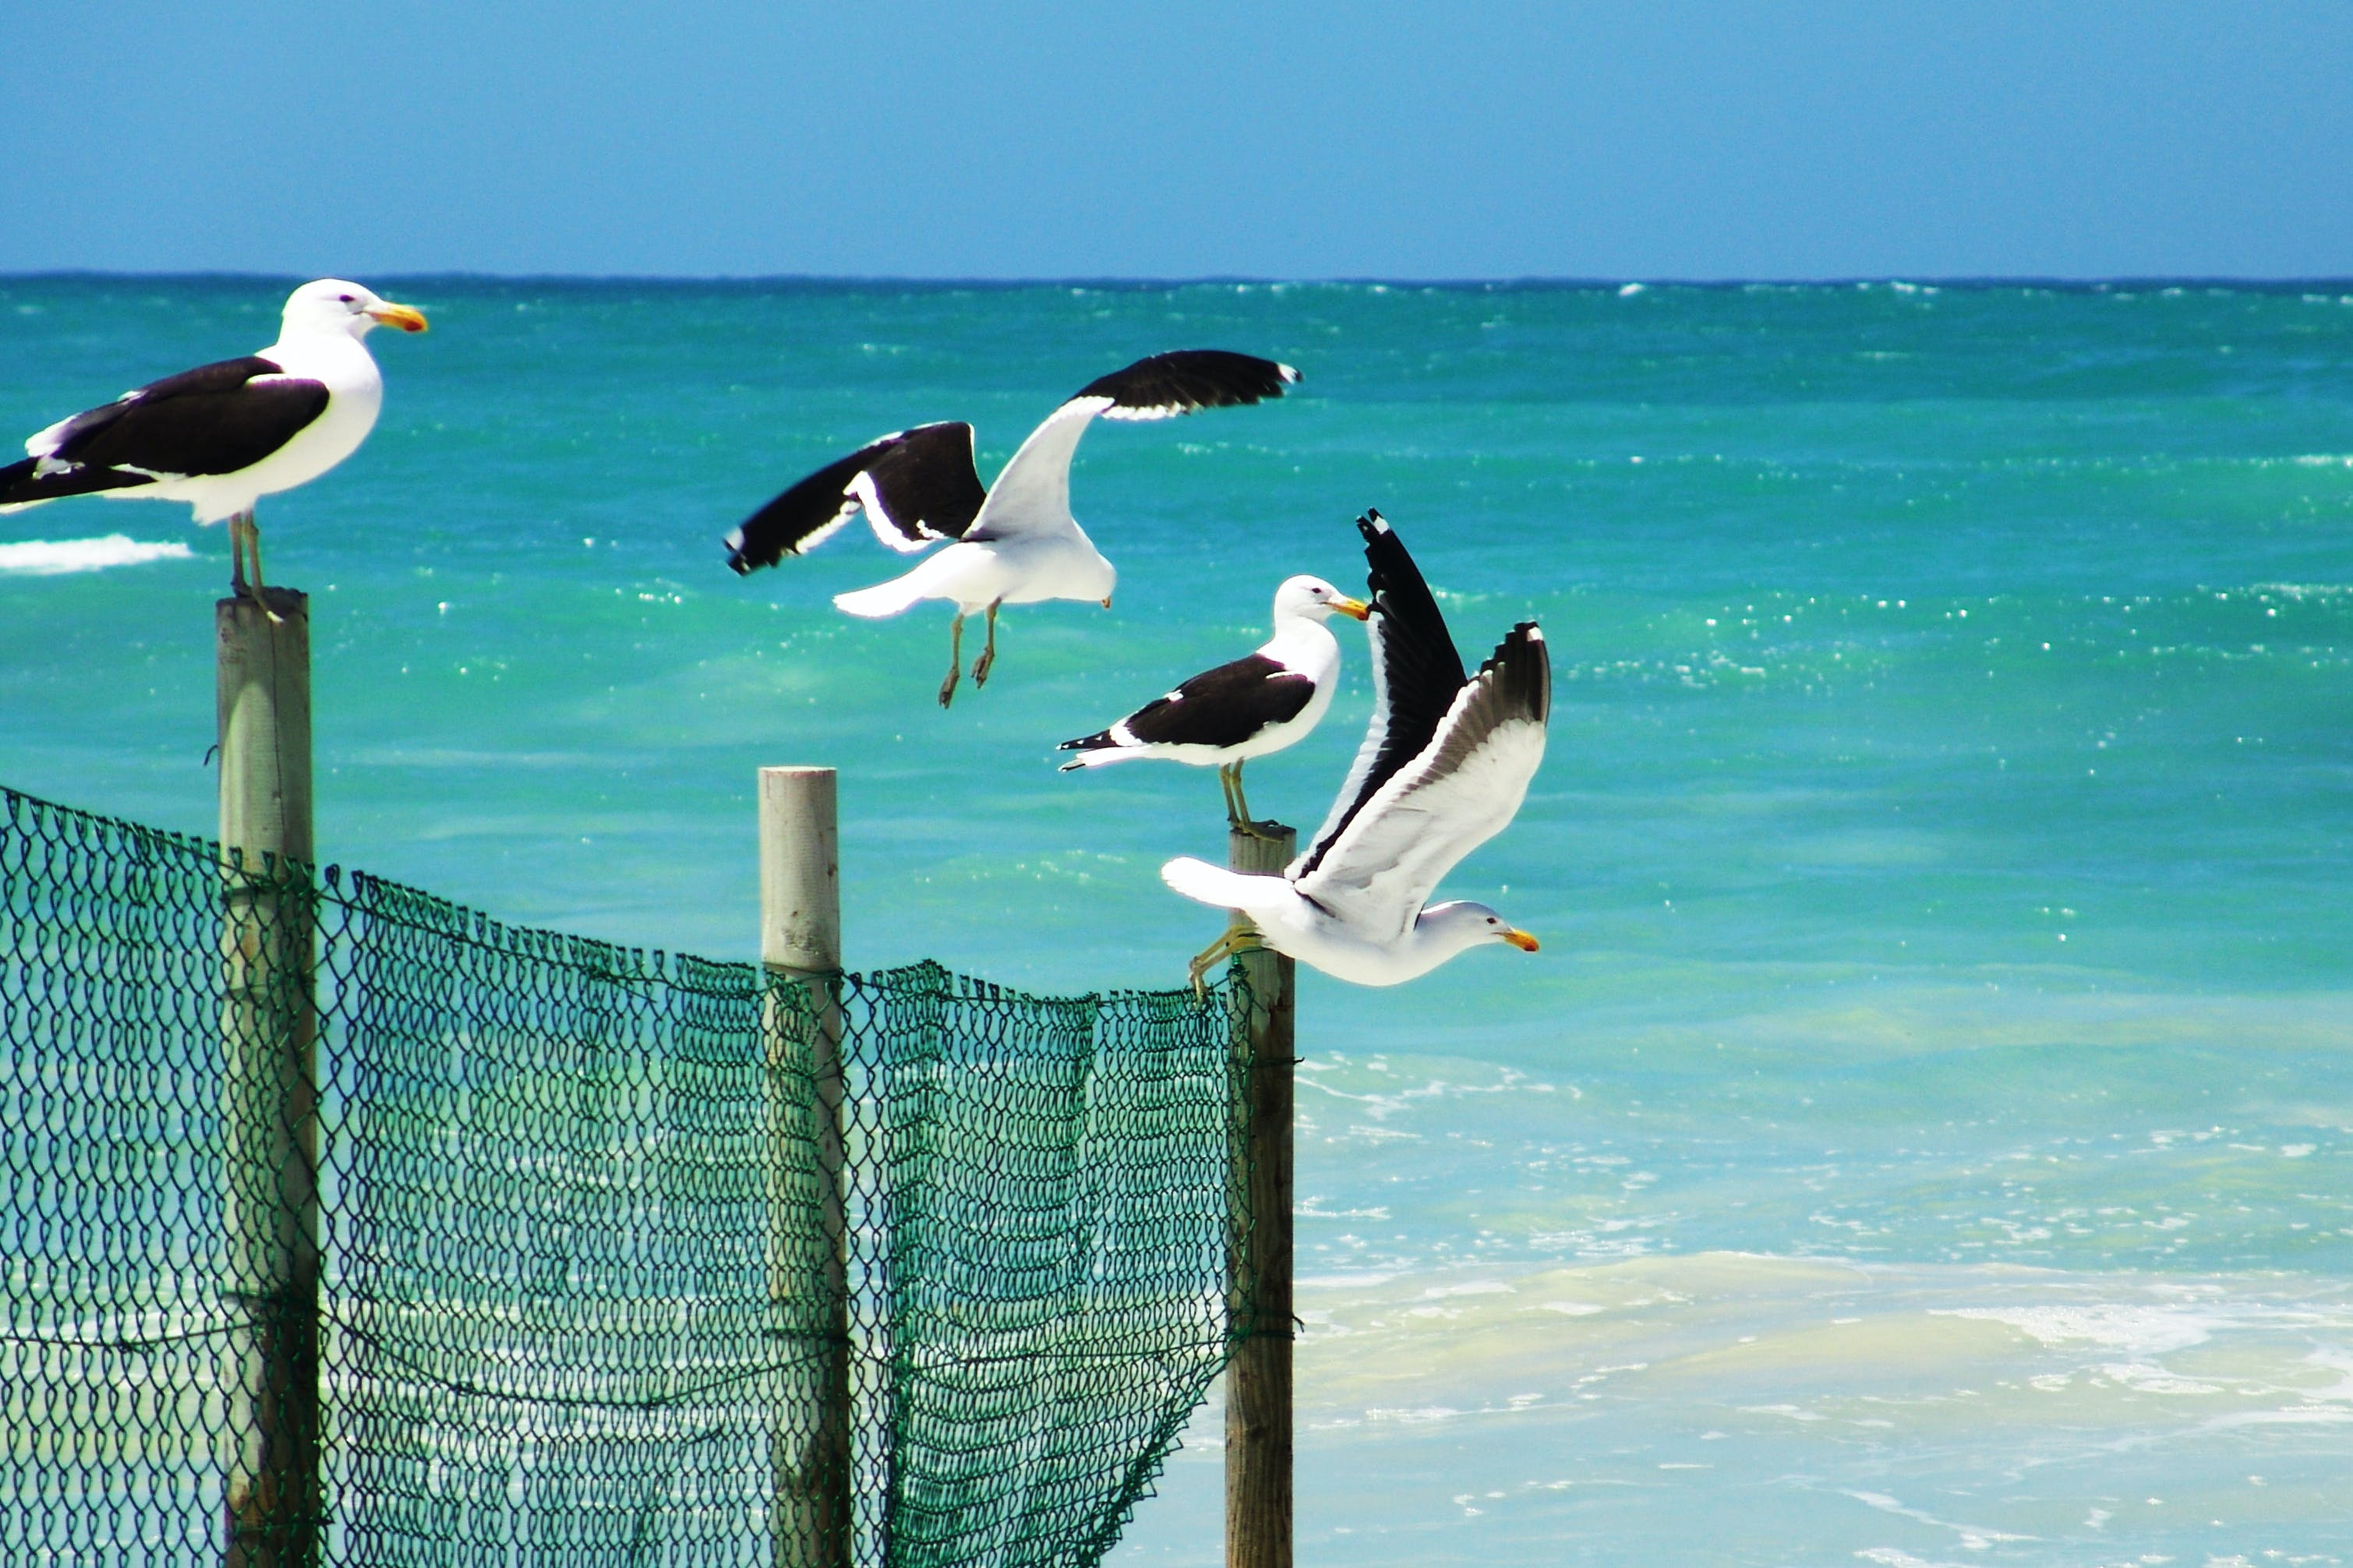 Seagulls Standing on a Wooden Fence Near a Beach